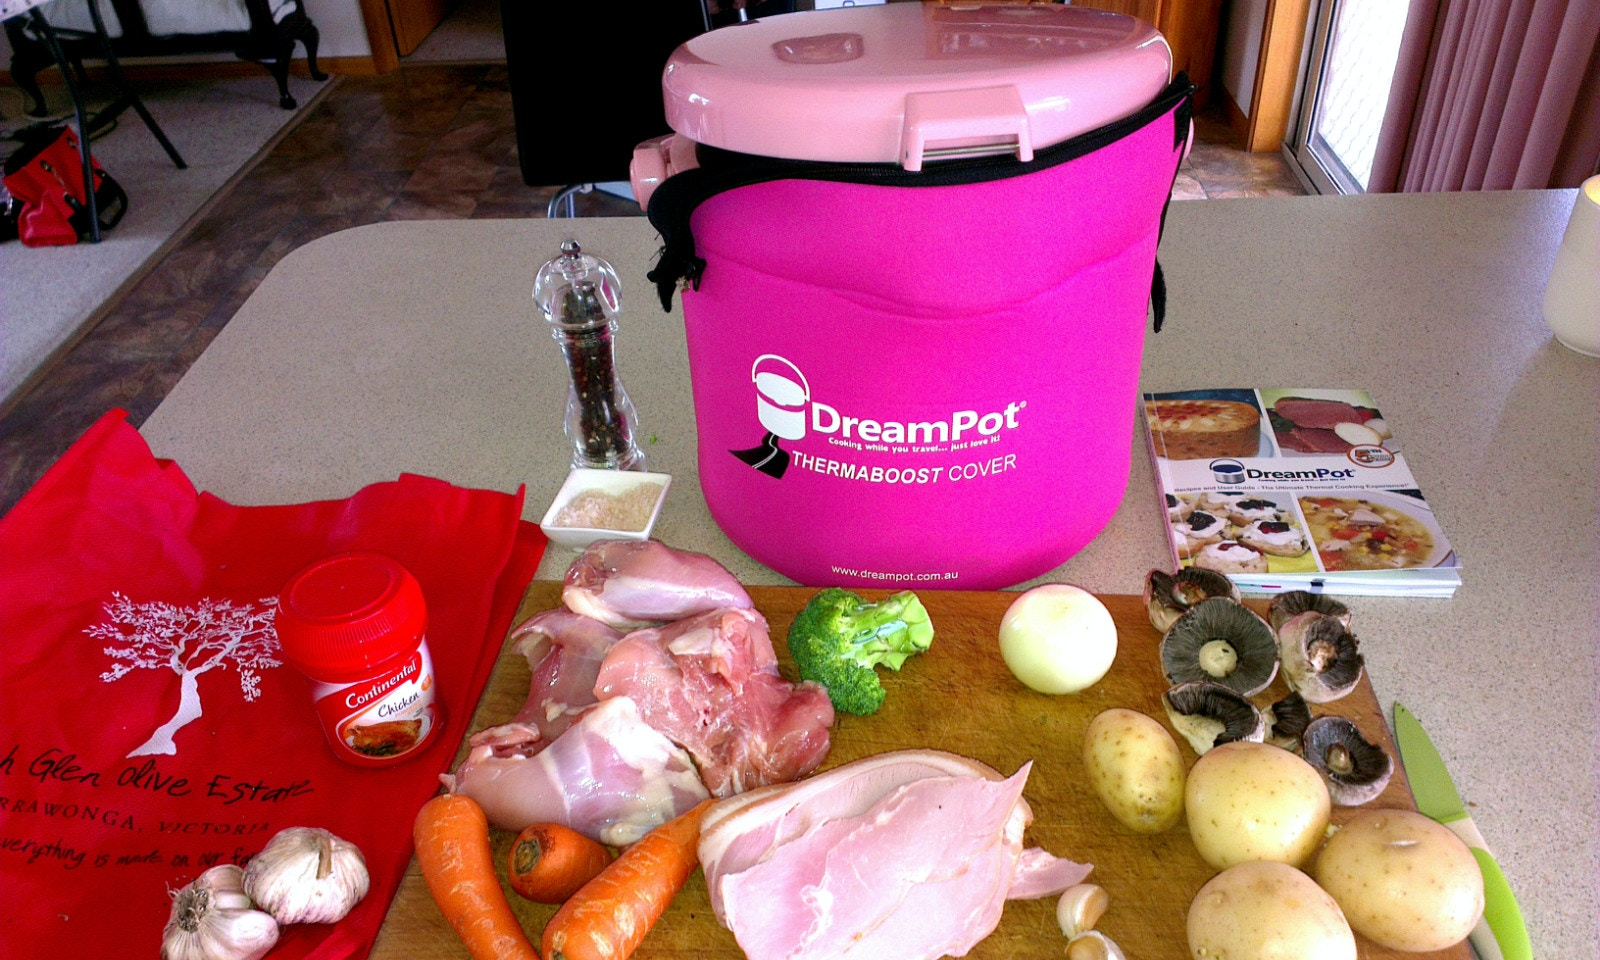 Pam's Pink DreamPot chicken bacon recipe served with crusty bread is yum